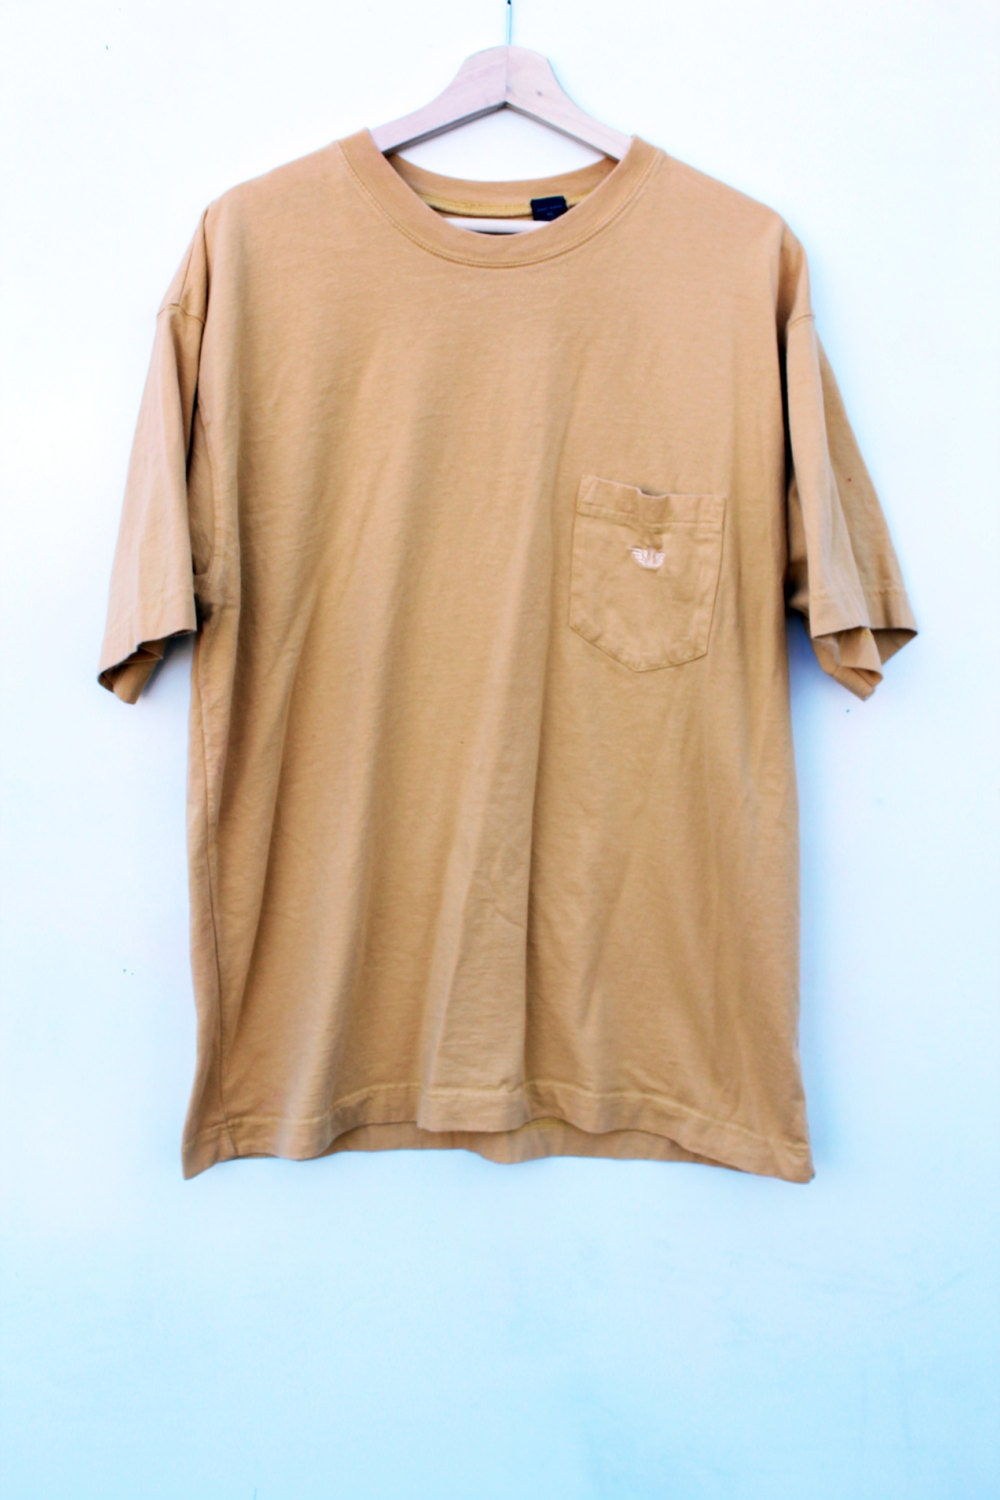 90s minimalist t shirt mustard plain solid pocket tee for Dingy white t shirts